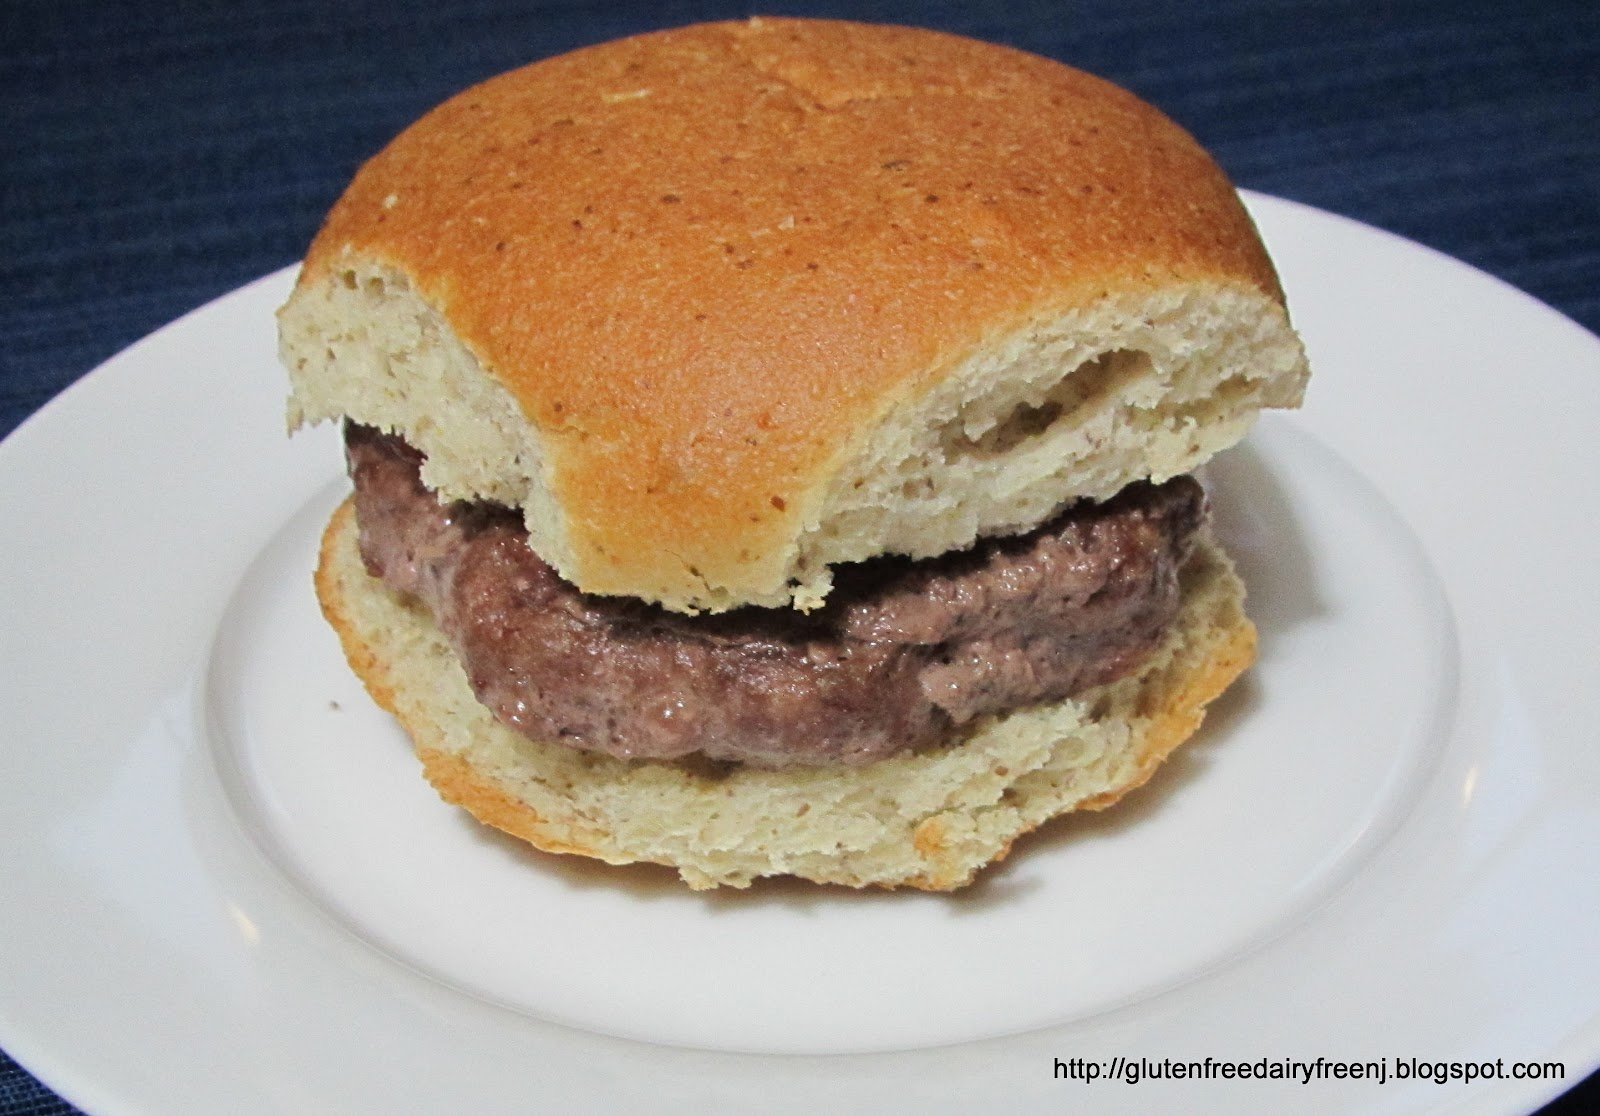 Which Gluten Free Hamburger Bun is Best? | Gluten Free / Dairy Free NJ